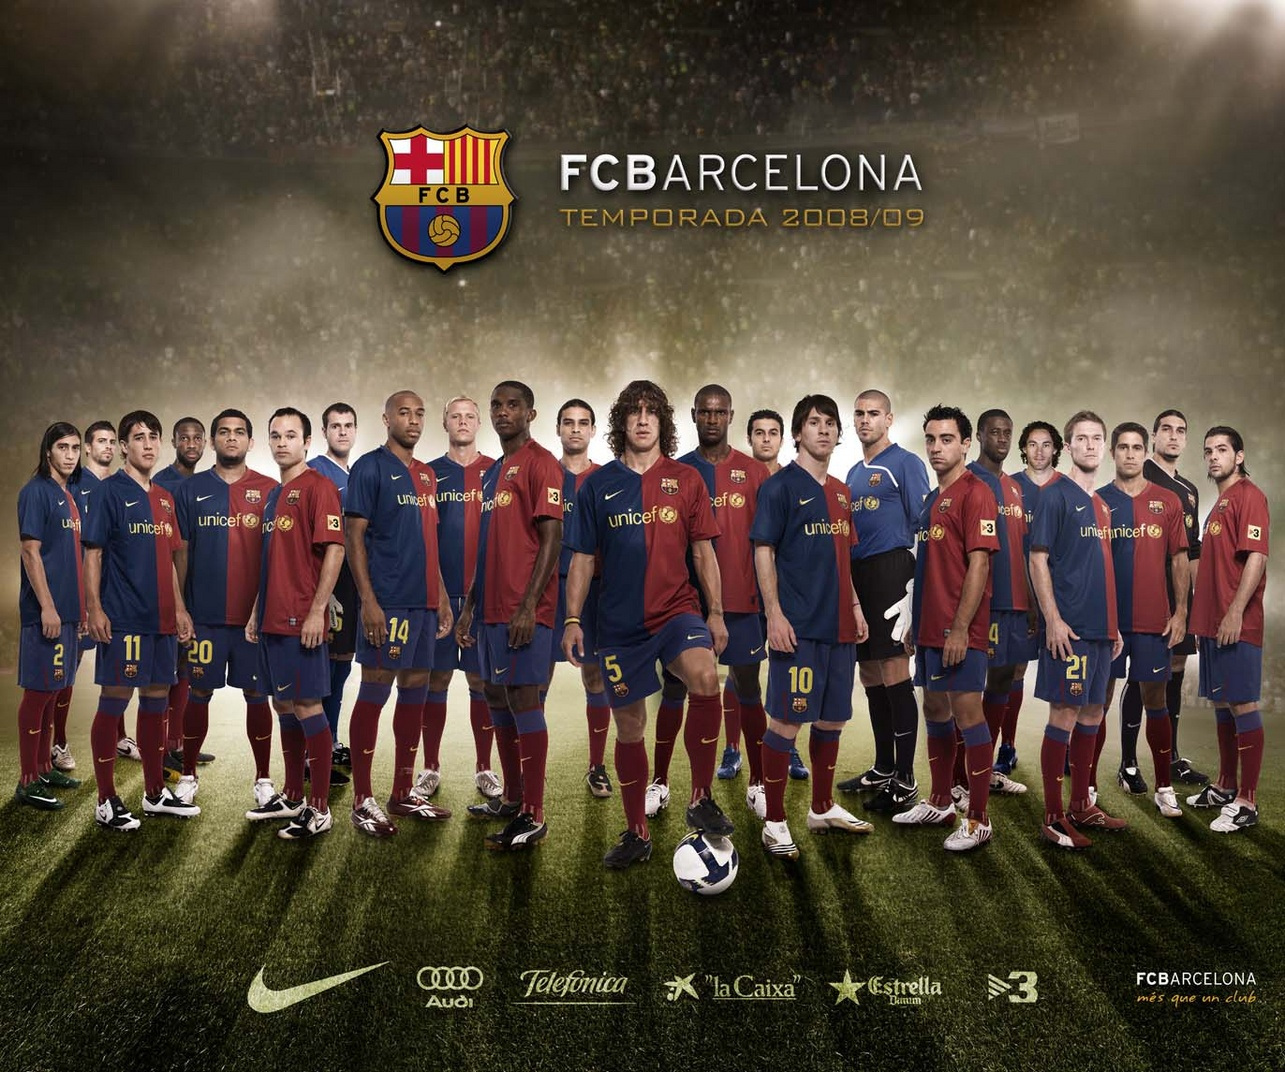 English Premier League Logo Wallpapers 2011 Football Soccer Photos Barcelona Wallpapers Football wallpapers pictures and football news 1285x1072